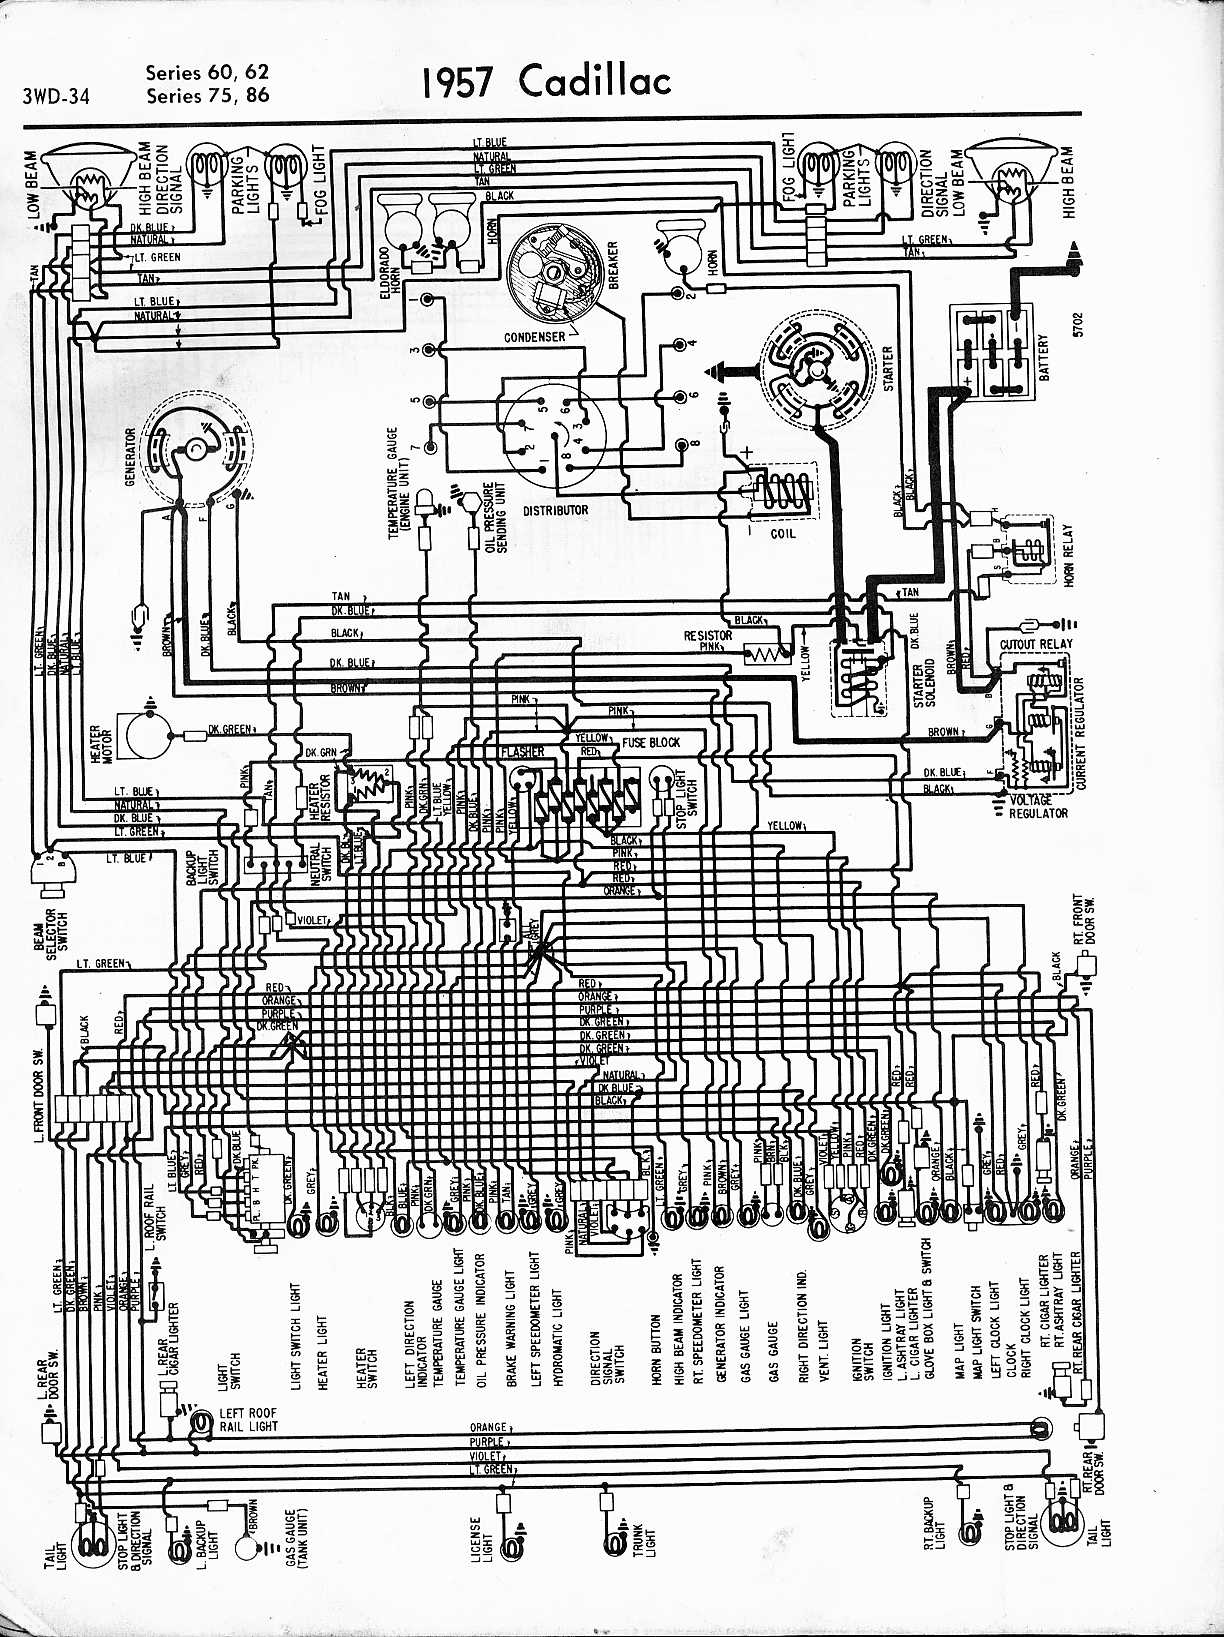 MWireCadi65_3WD 034 cadillac wiring diagrams 1992 cadillac eldorado wiring diagram  at fashall.co